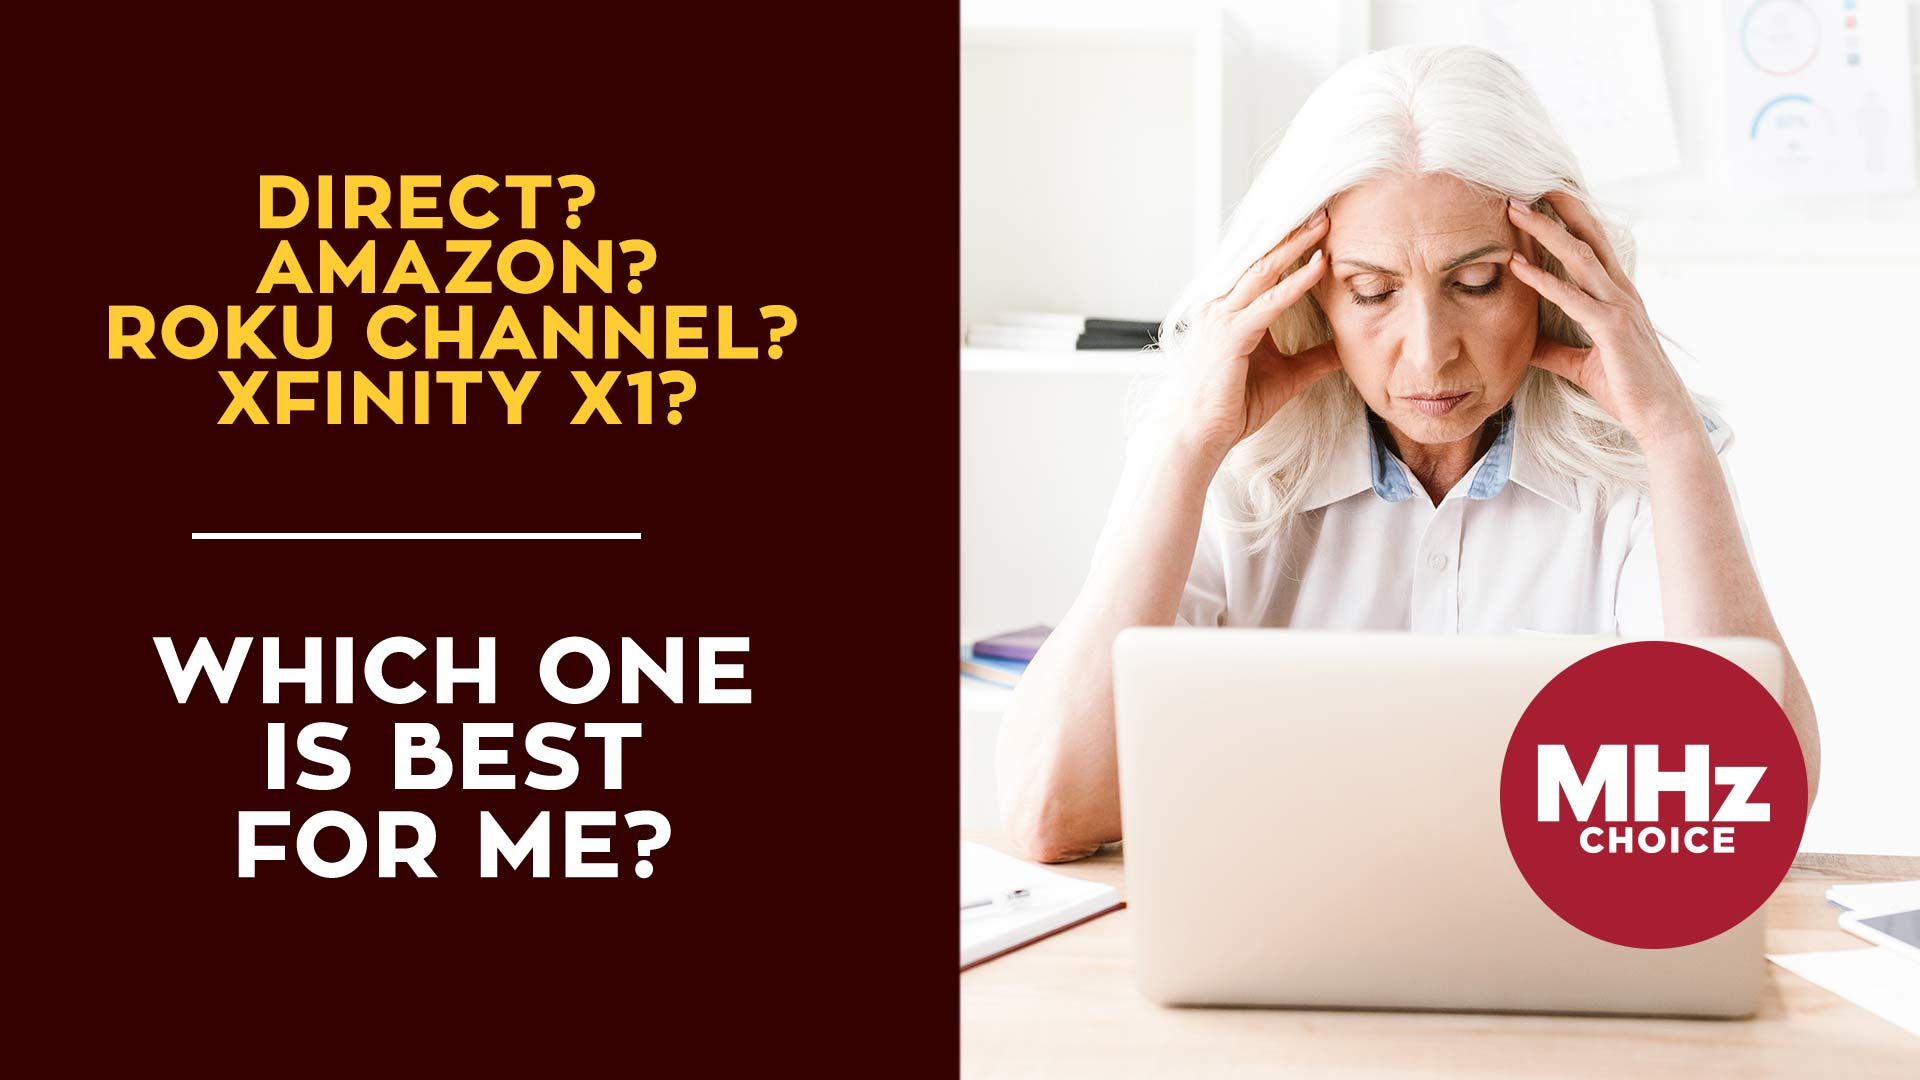 MHz Choice - Which subscription option is best for me?